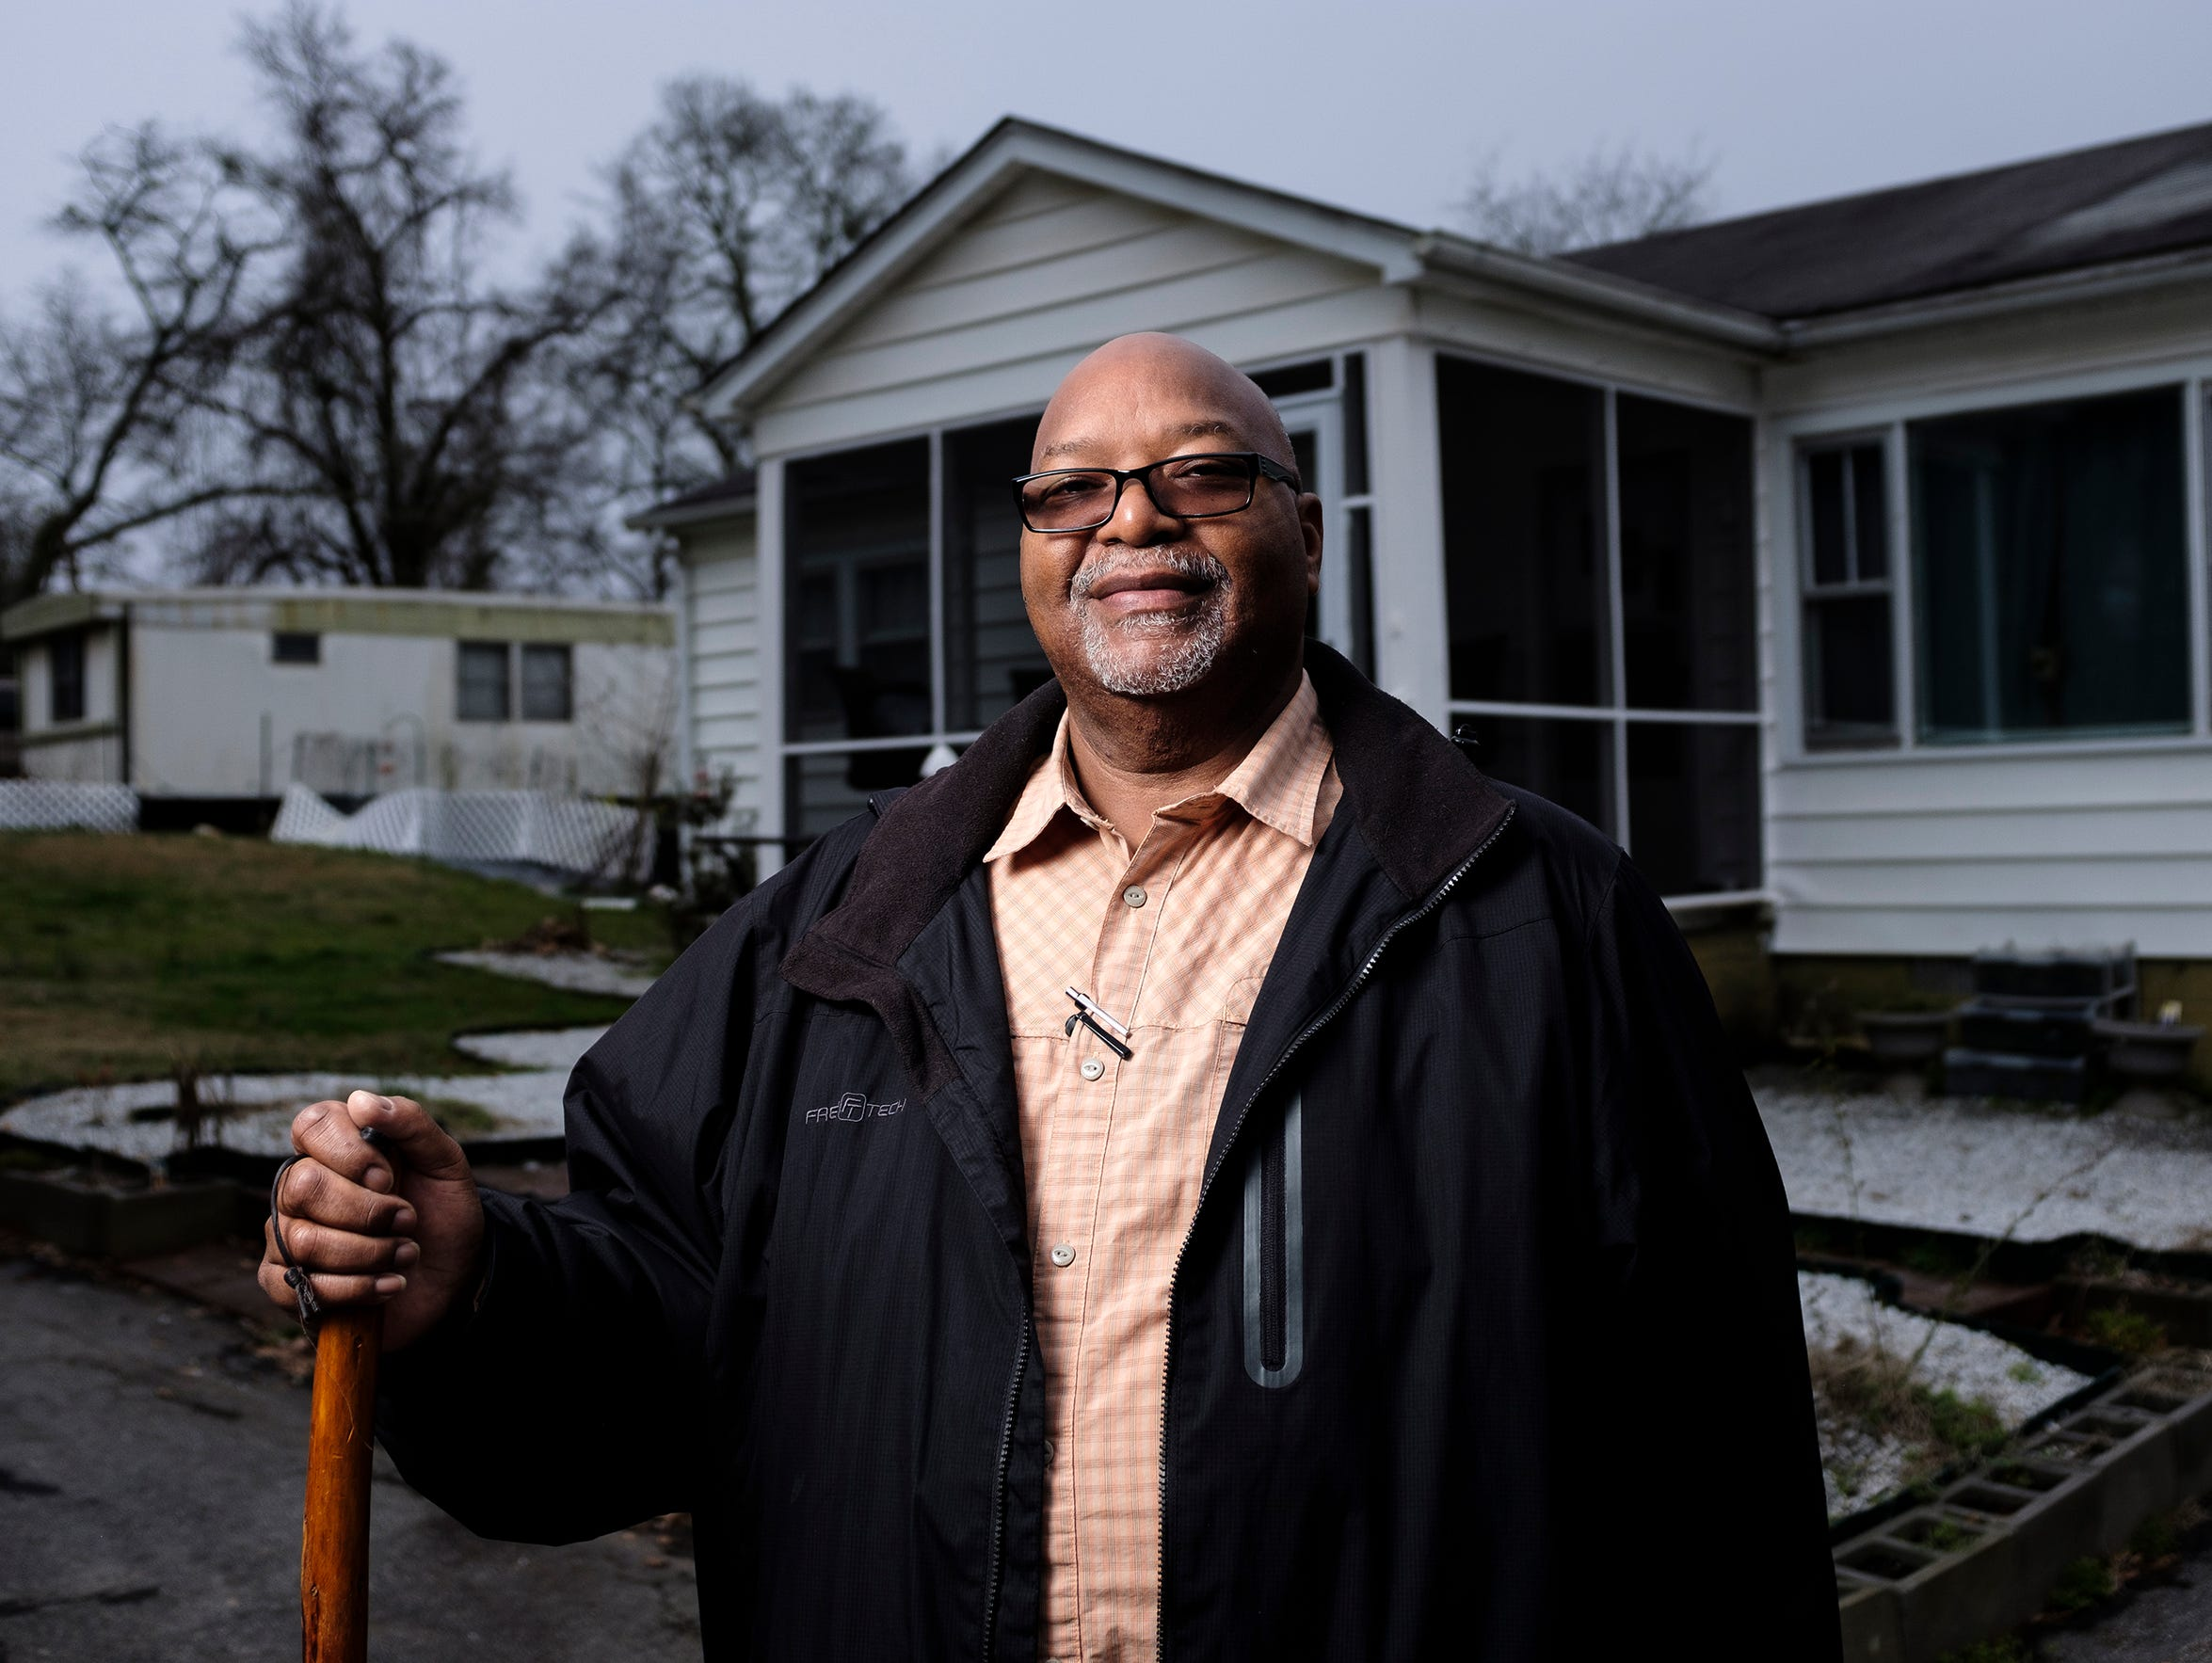 Cory Massey, 66, moved into his current residence in